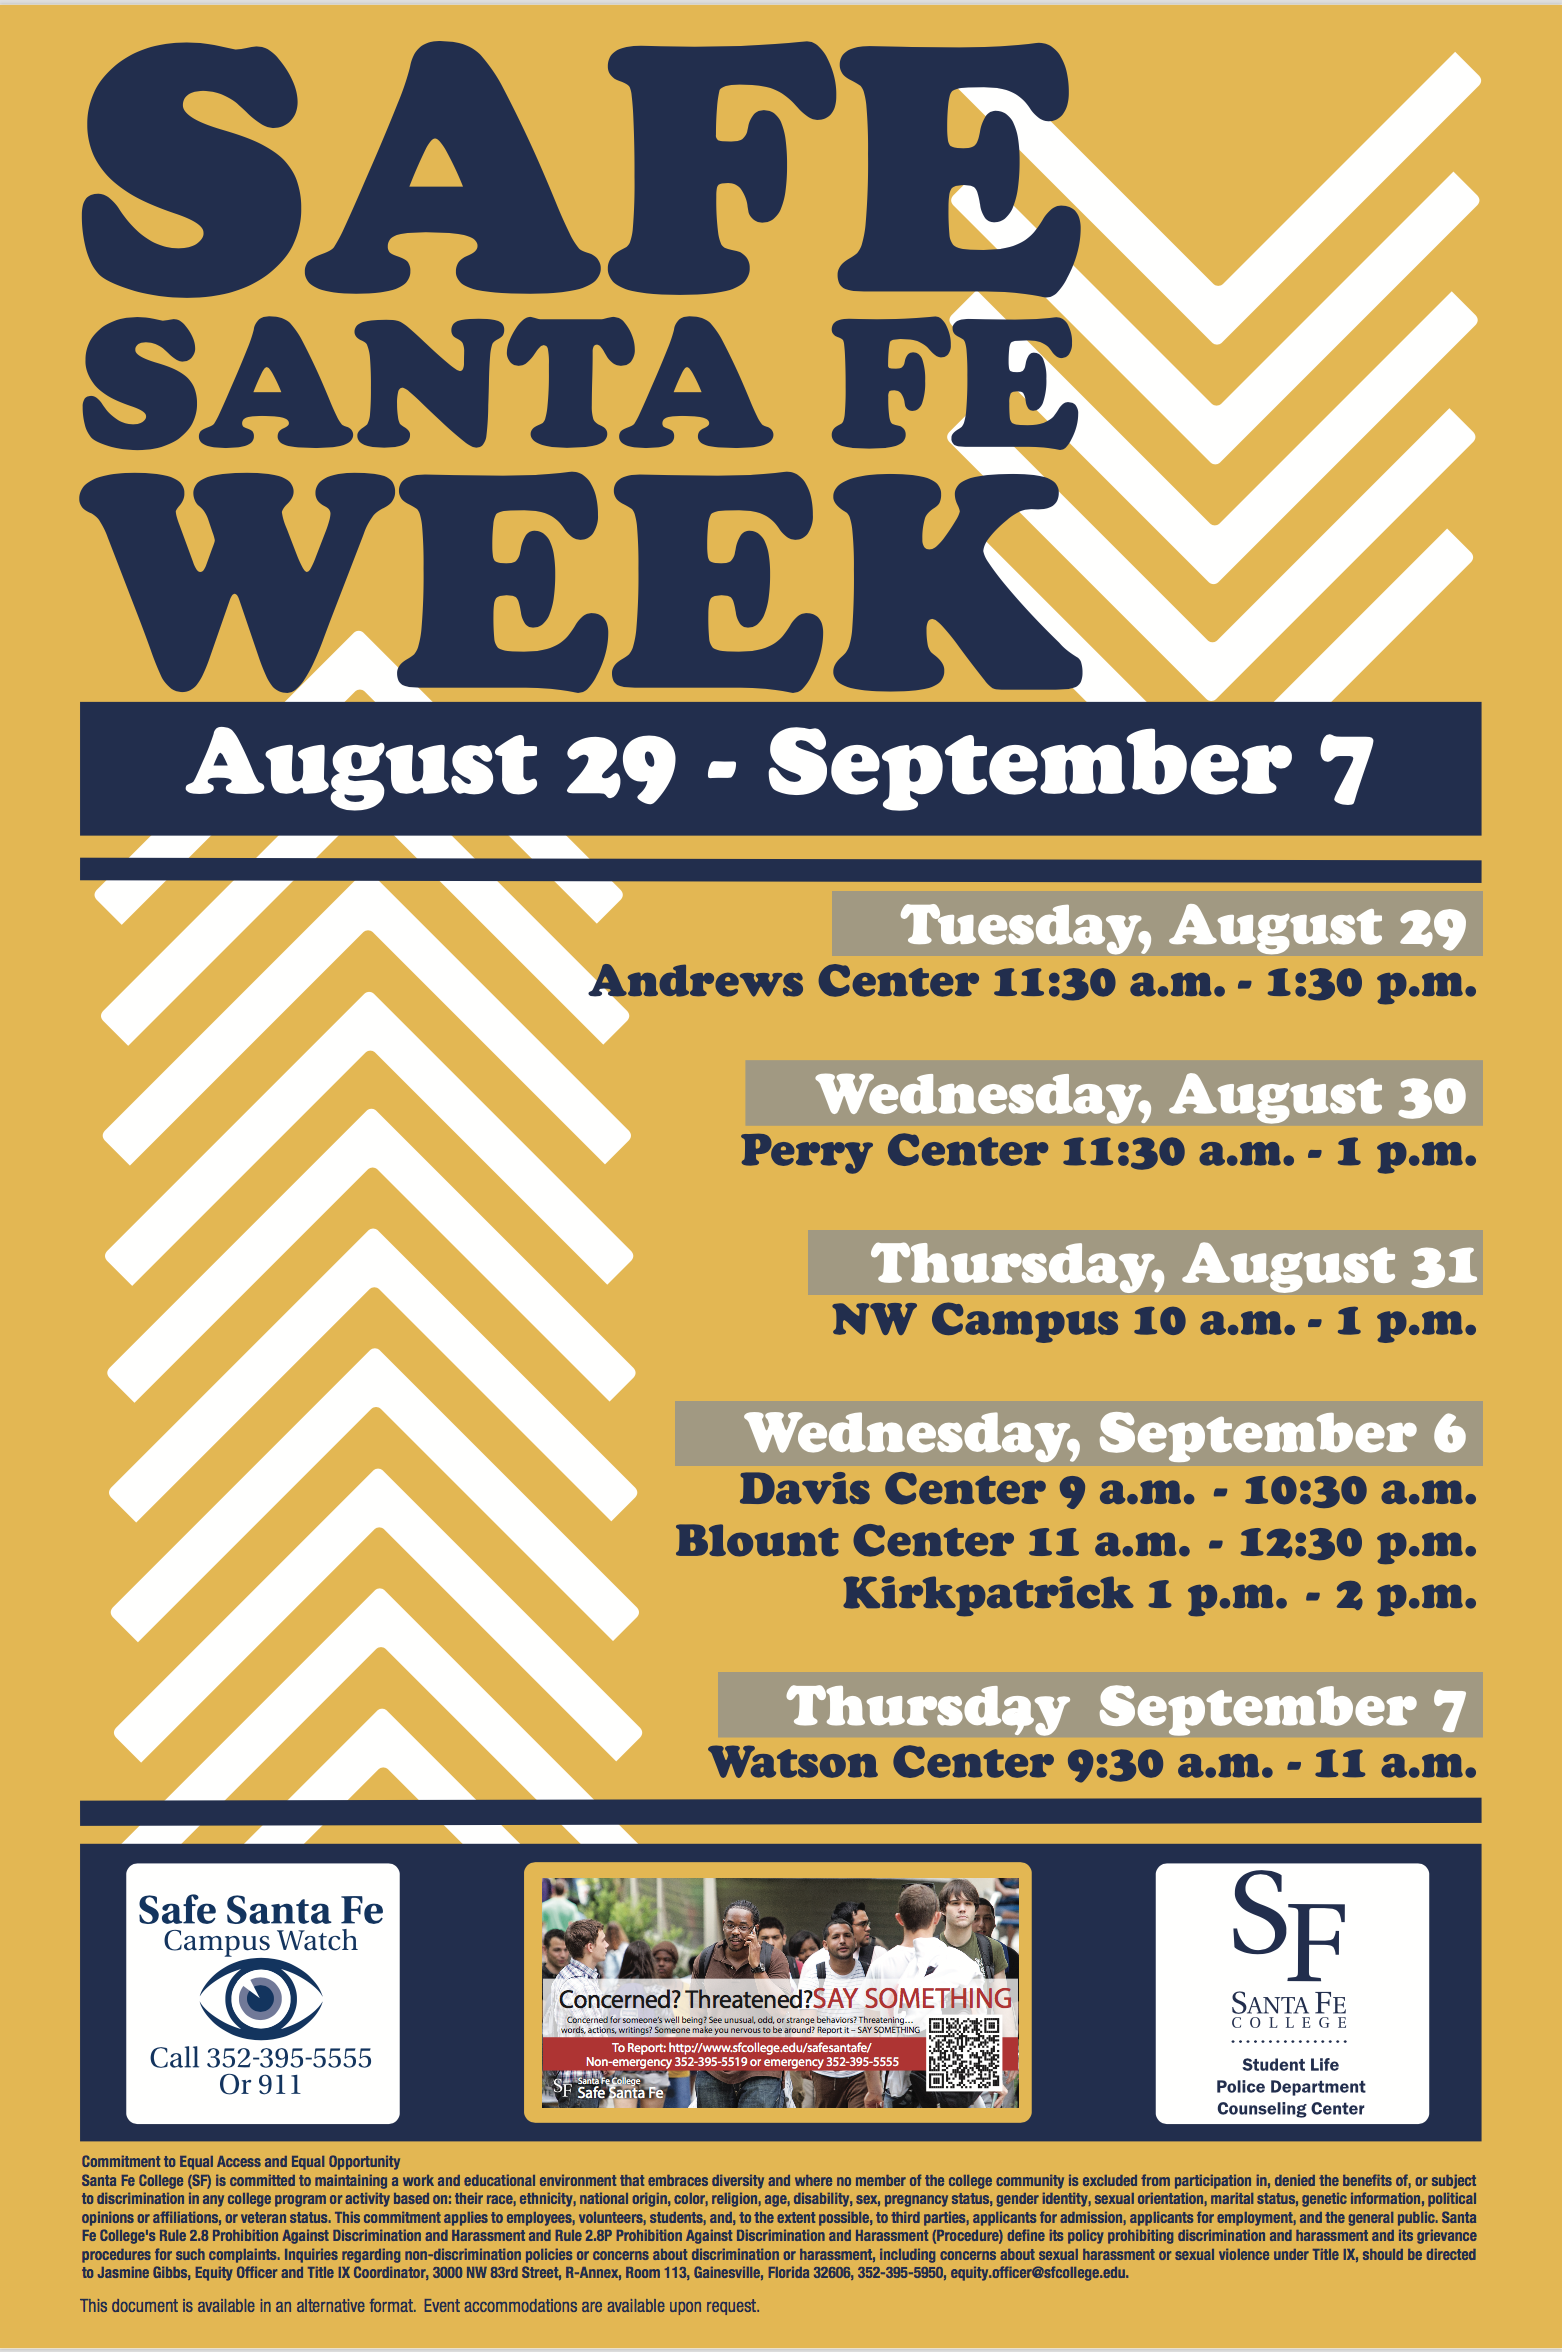 Safe Santa Fe Week begins August 29, 2017